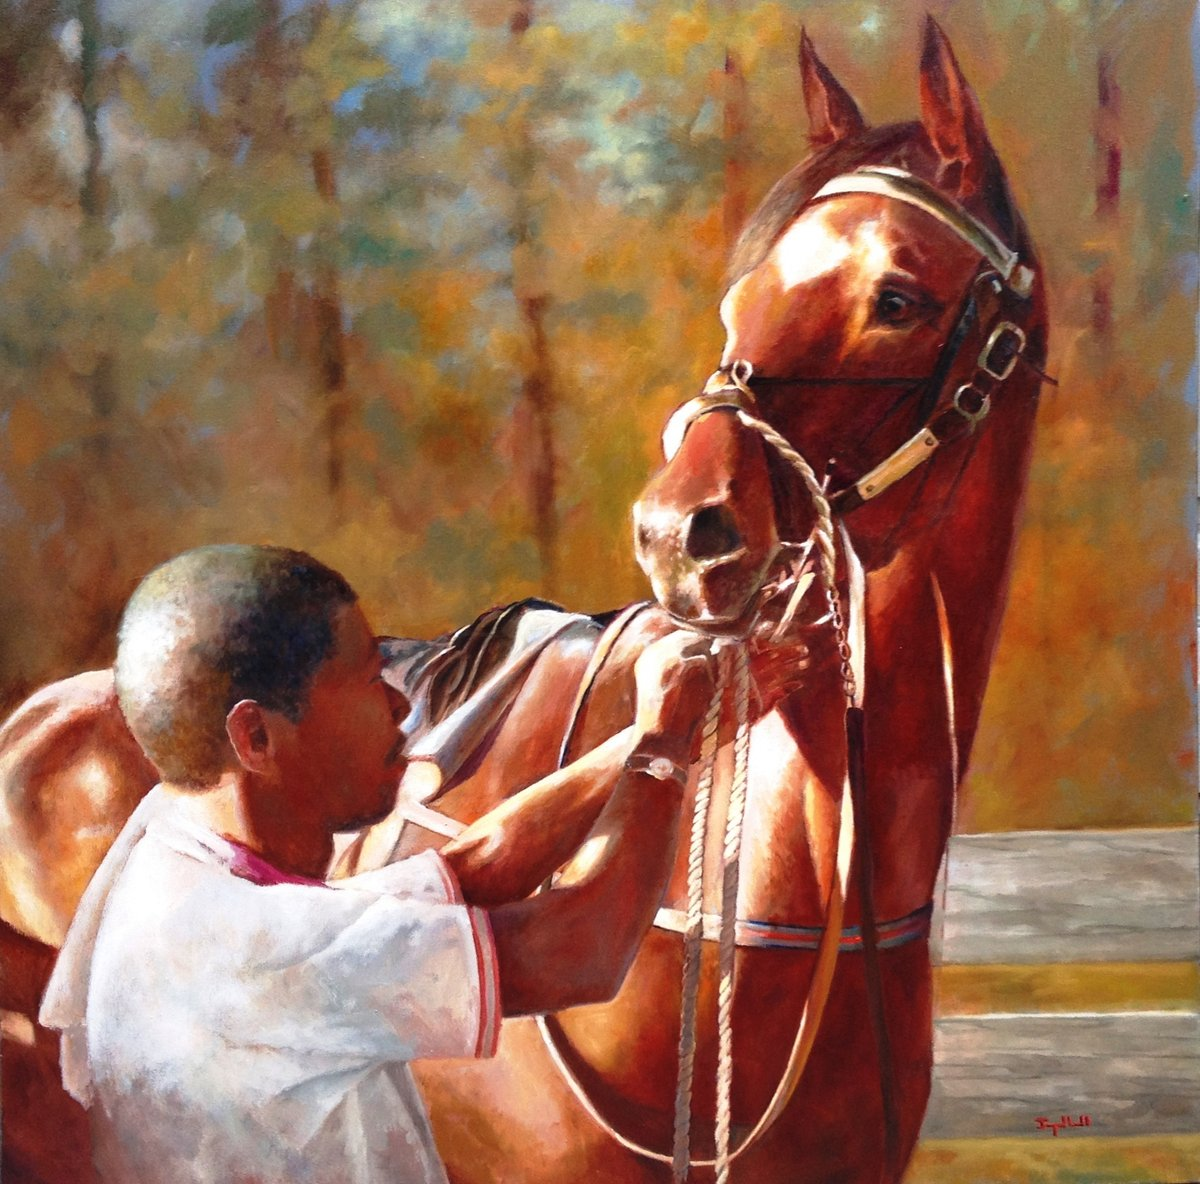 """Waiting for Jockey"" by the wonderful Joyce Hall!   Oil 36"" by 36"" Dm us for more details! . . . #joycehall #waitingforjockey #horsefineart #dogandhorsefineart #racehorse #equineart #horseandrider #oilpainting #horsesofinstagram #horselove #racehorsepainting #racehorsespic.twitter.com/RqryPmceOZ"